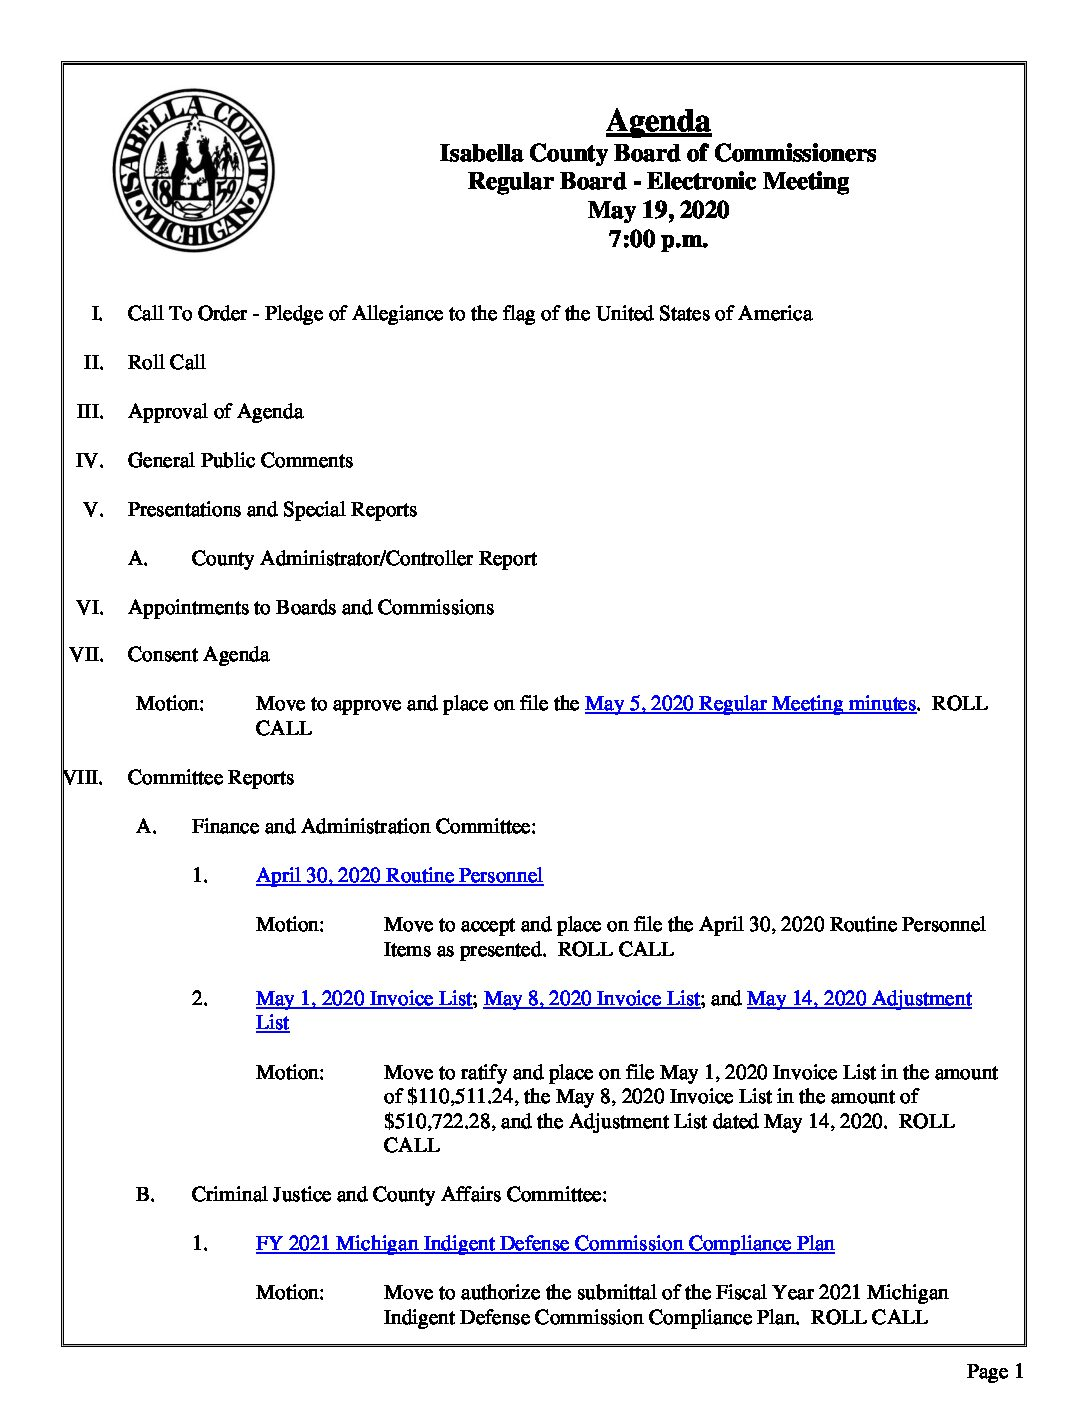 preview image of first page May 19, 2020 Agenda